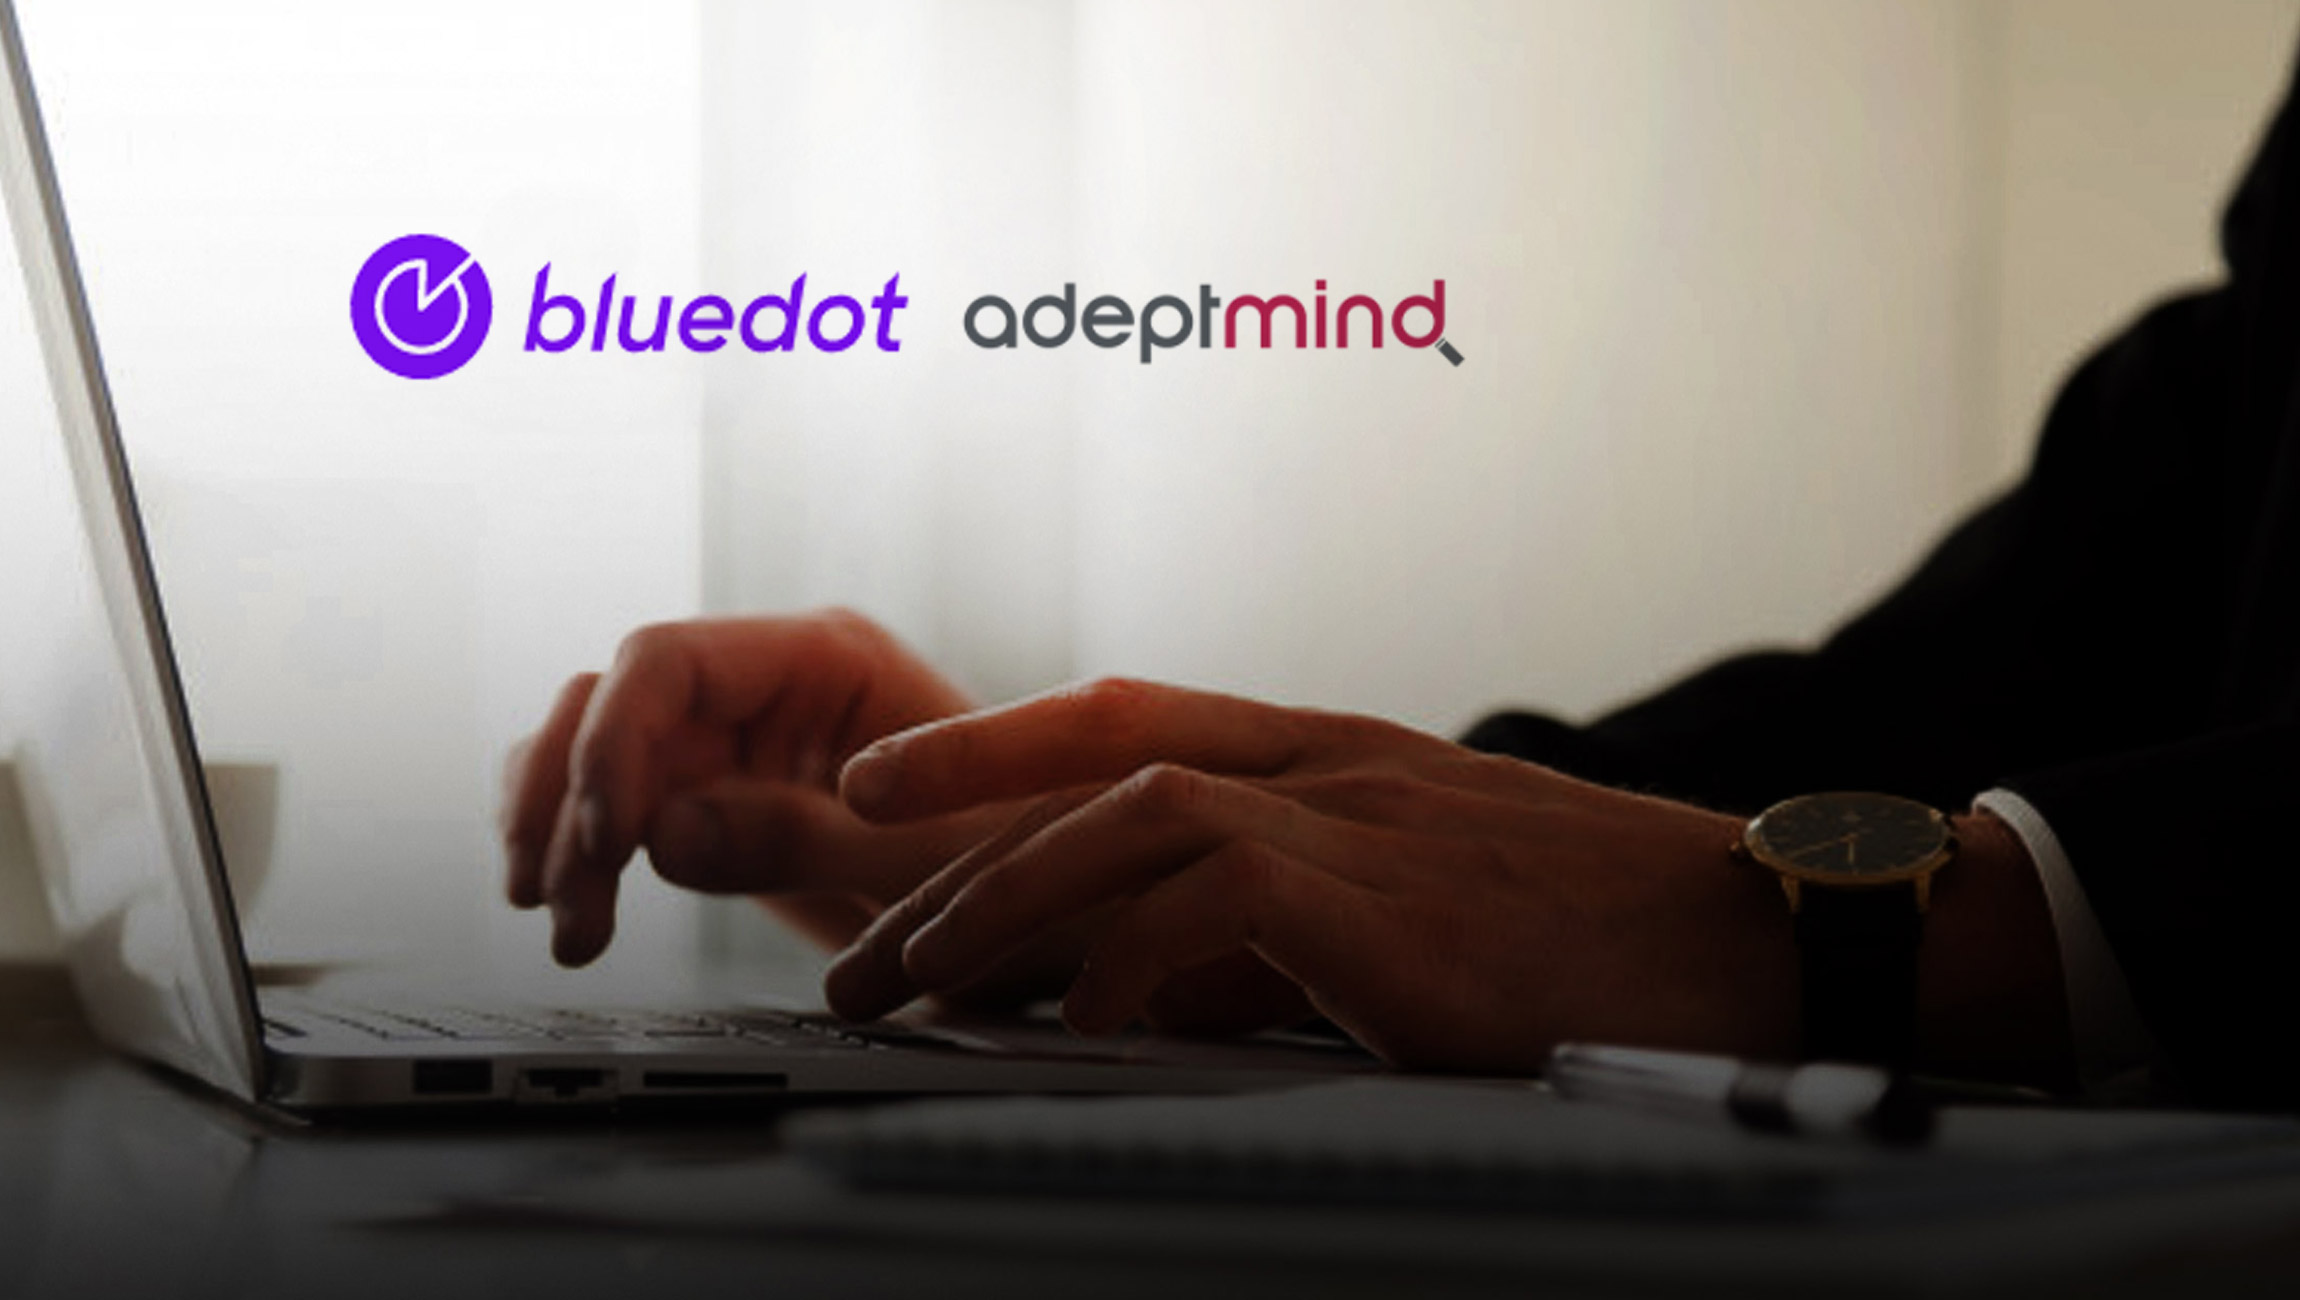 Bluedot-and-Adeptmind-Team-Up-to-Redefine-Mall-Shopping-and-Transform-Curbside-Pickup-Into-a-First-Class-Arrival-Experience